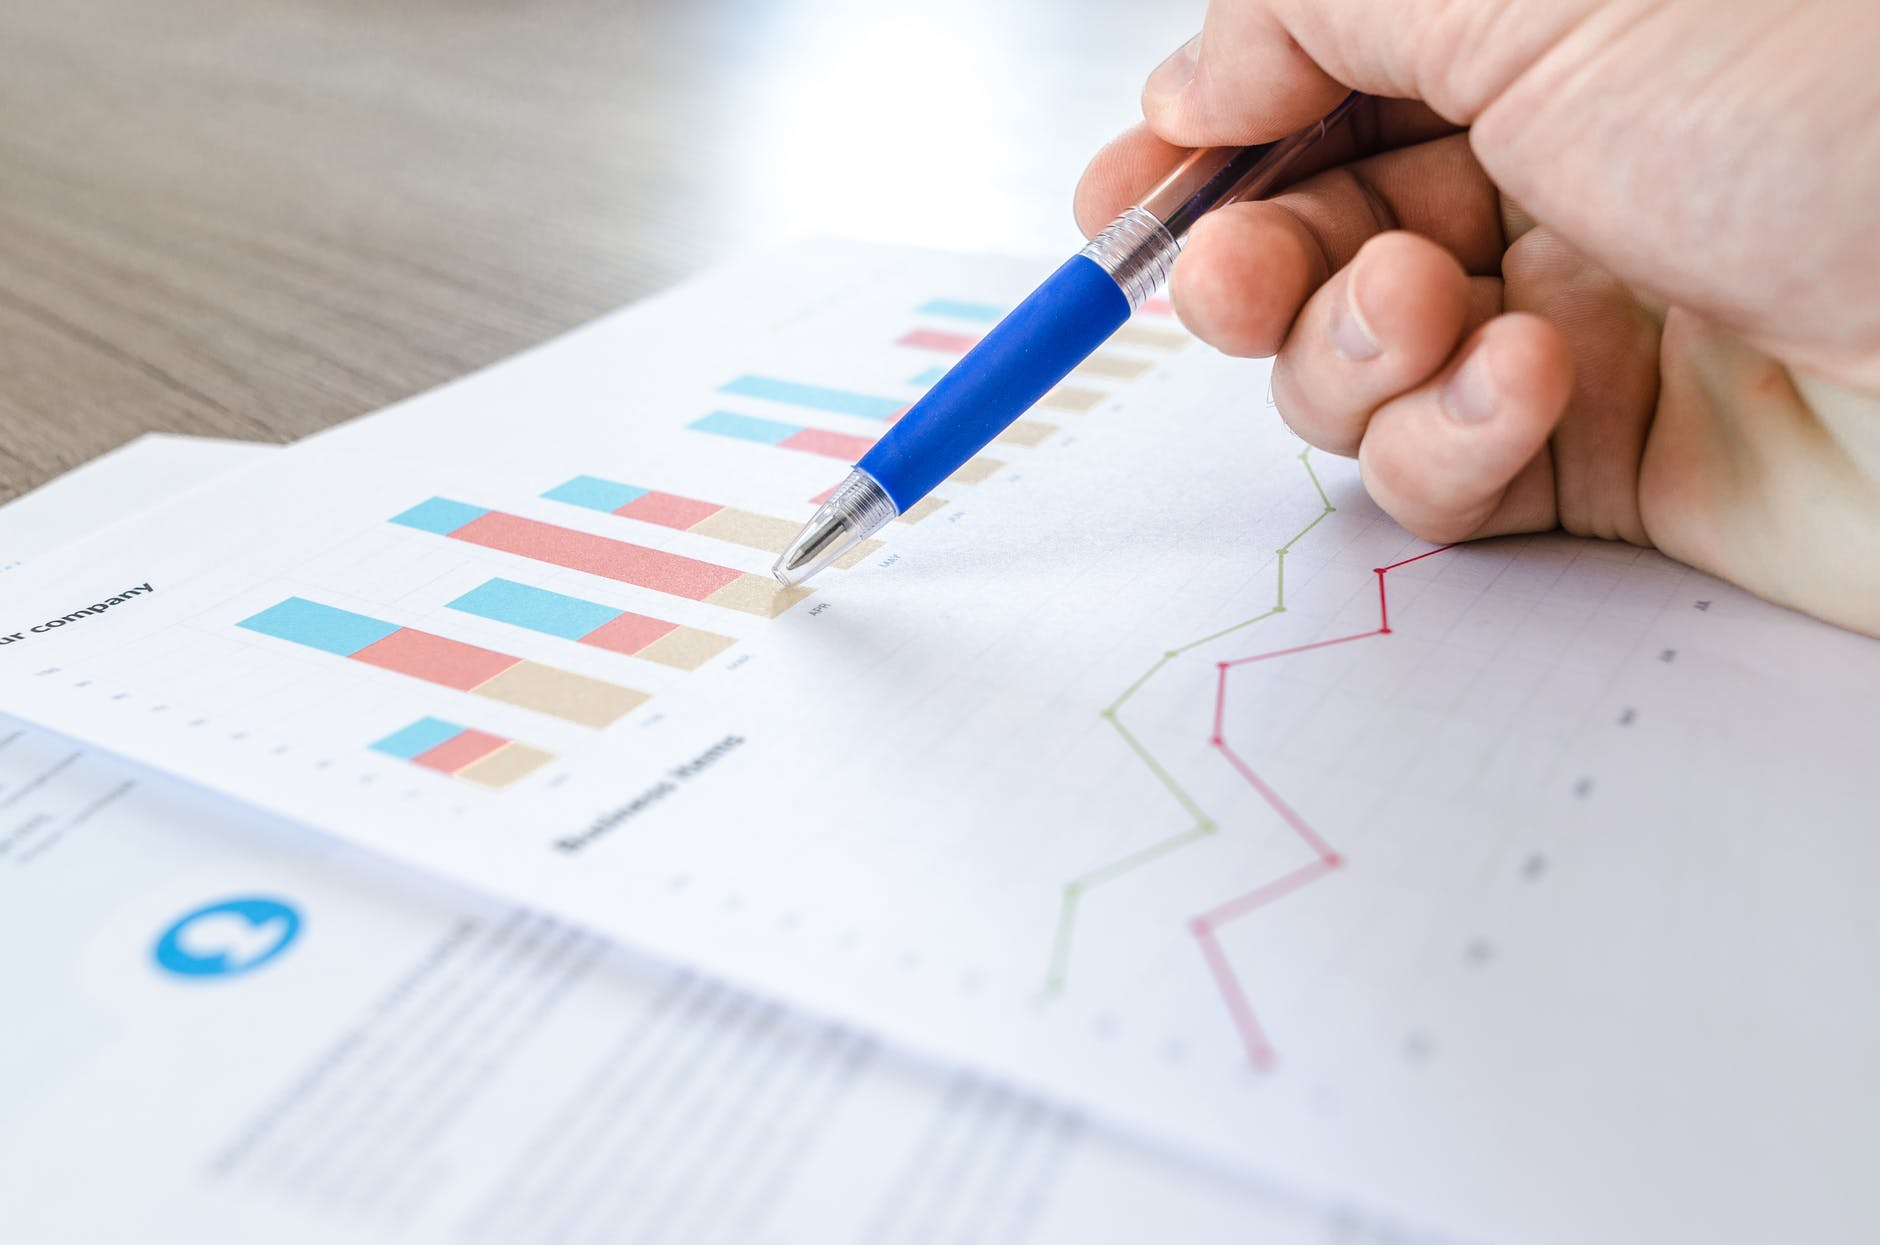 hand with pen pointing to graph that shows sales growth